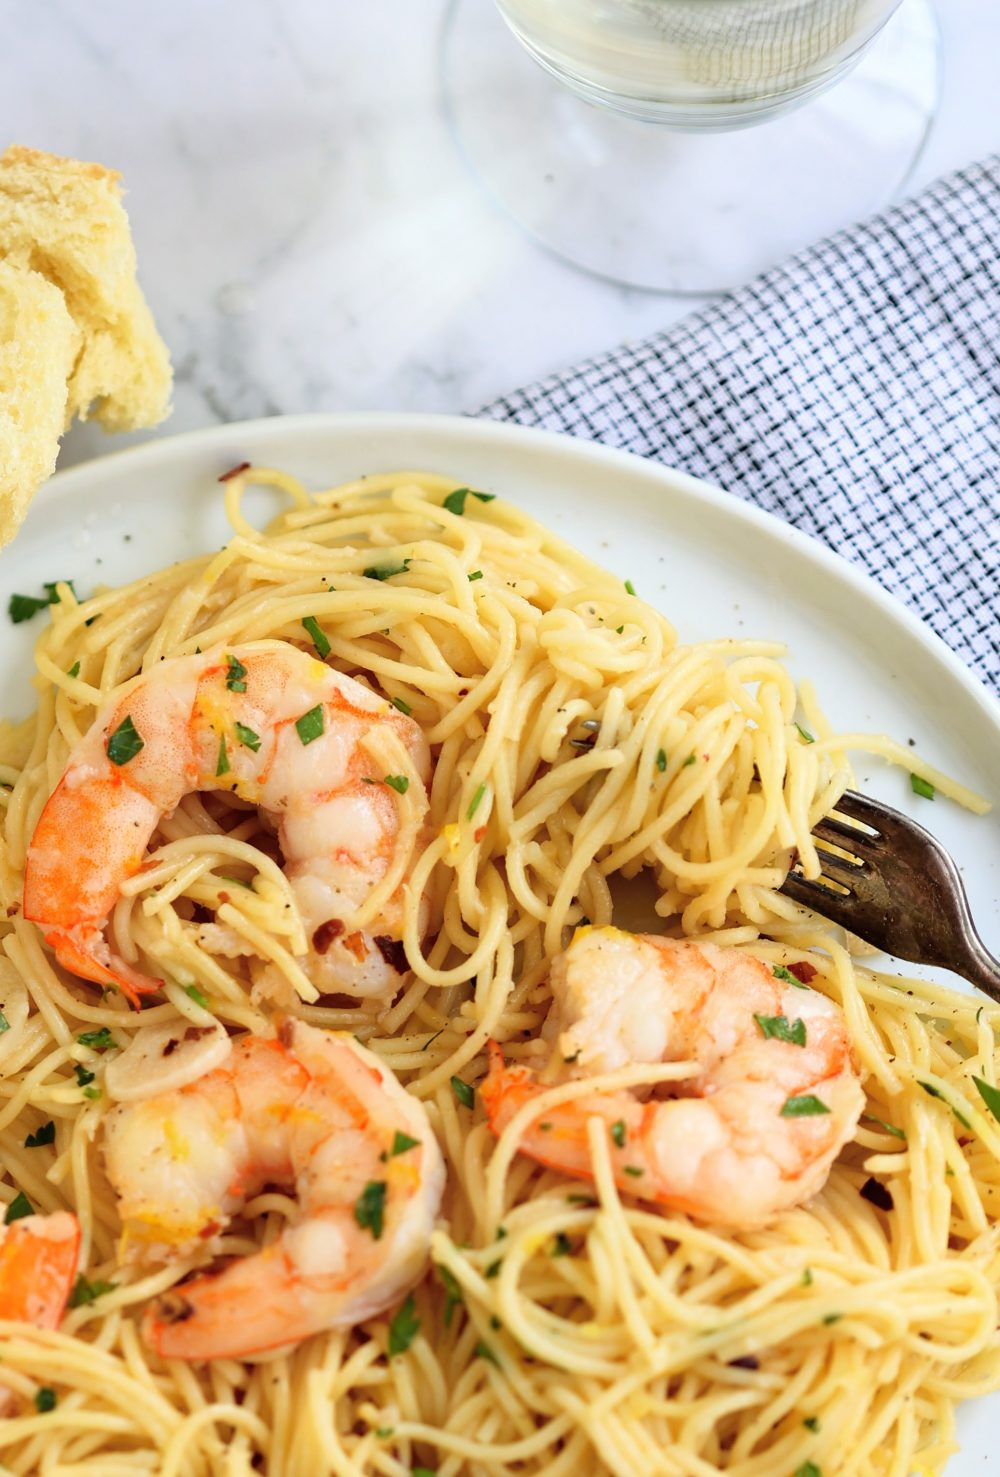 plate of shrimp scampi with angel hair pasta and glass of white wine